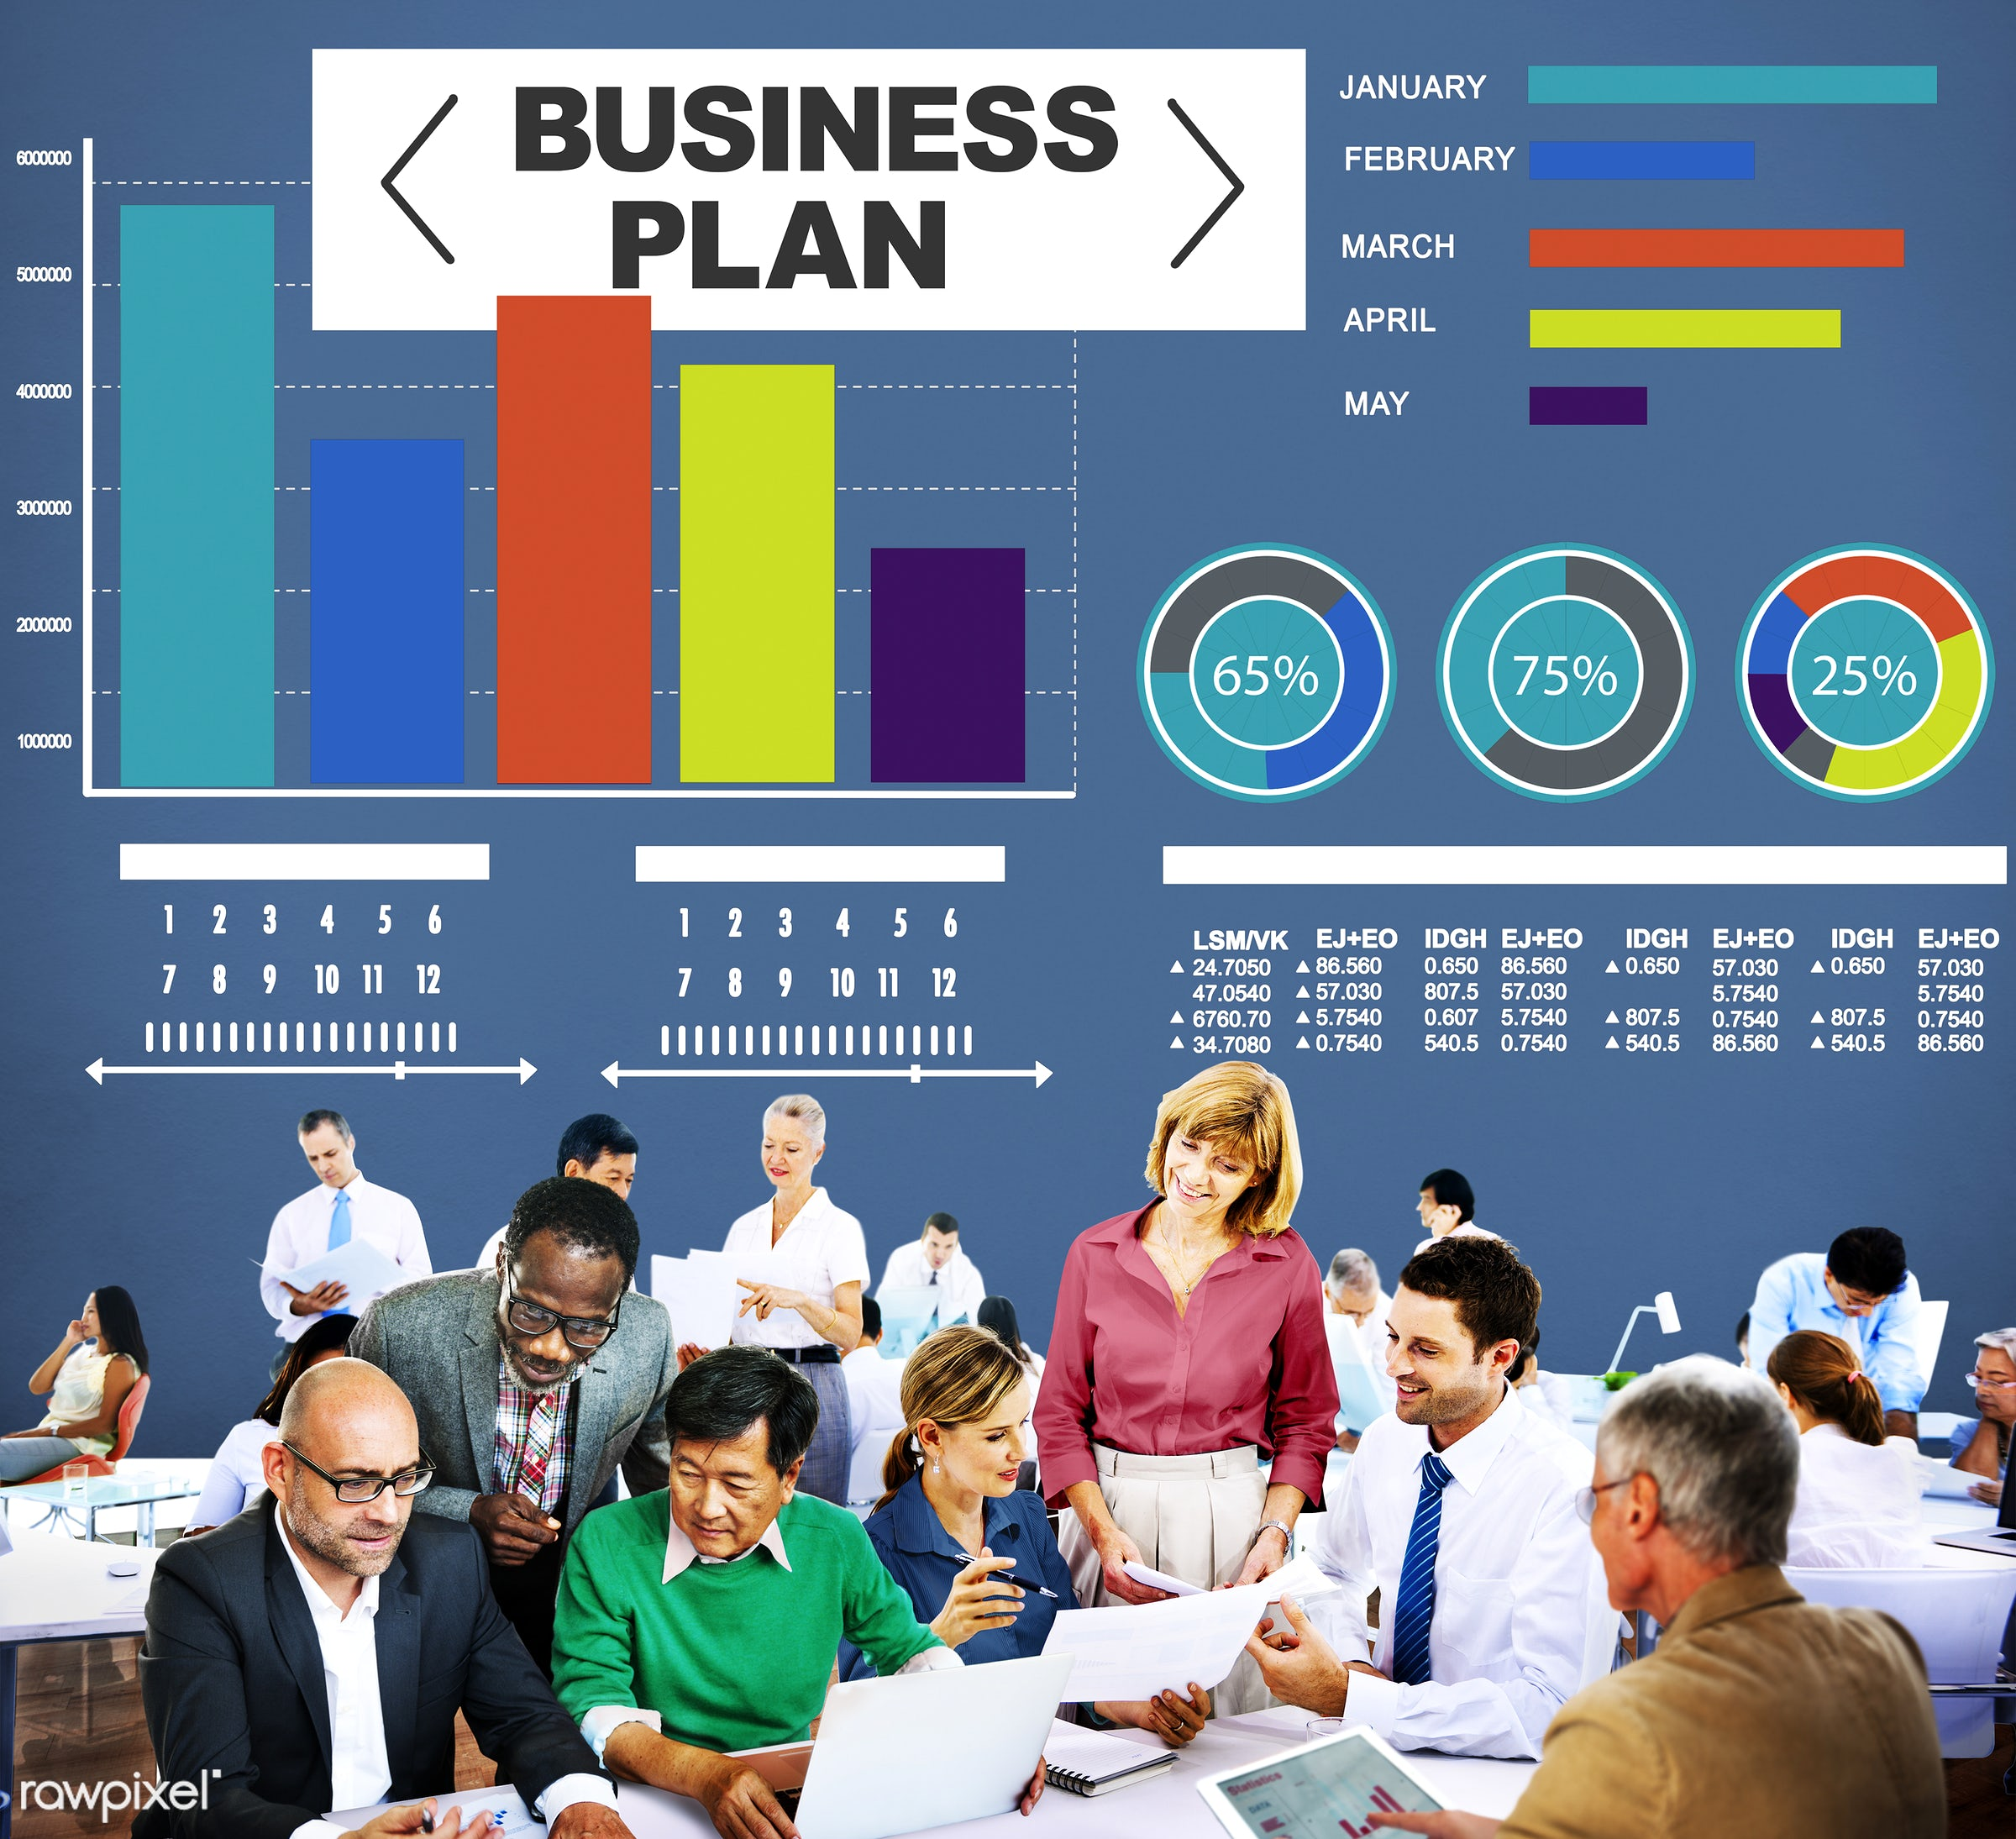 analysis, bar graph, brainstorming, business, business people, businessmen, businesswomen, busy, chart, communication,...